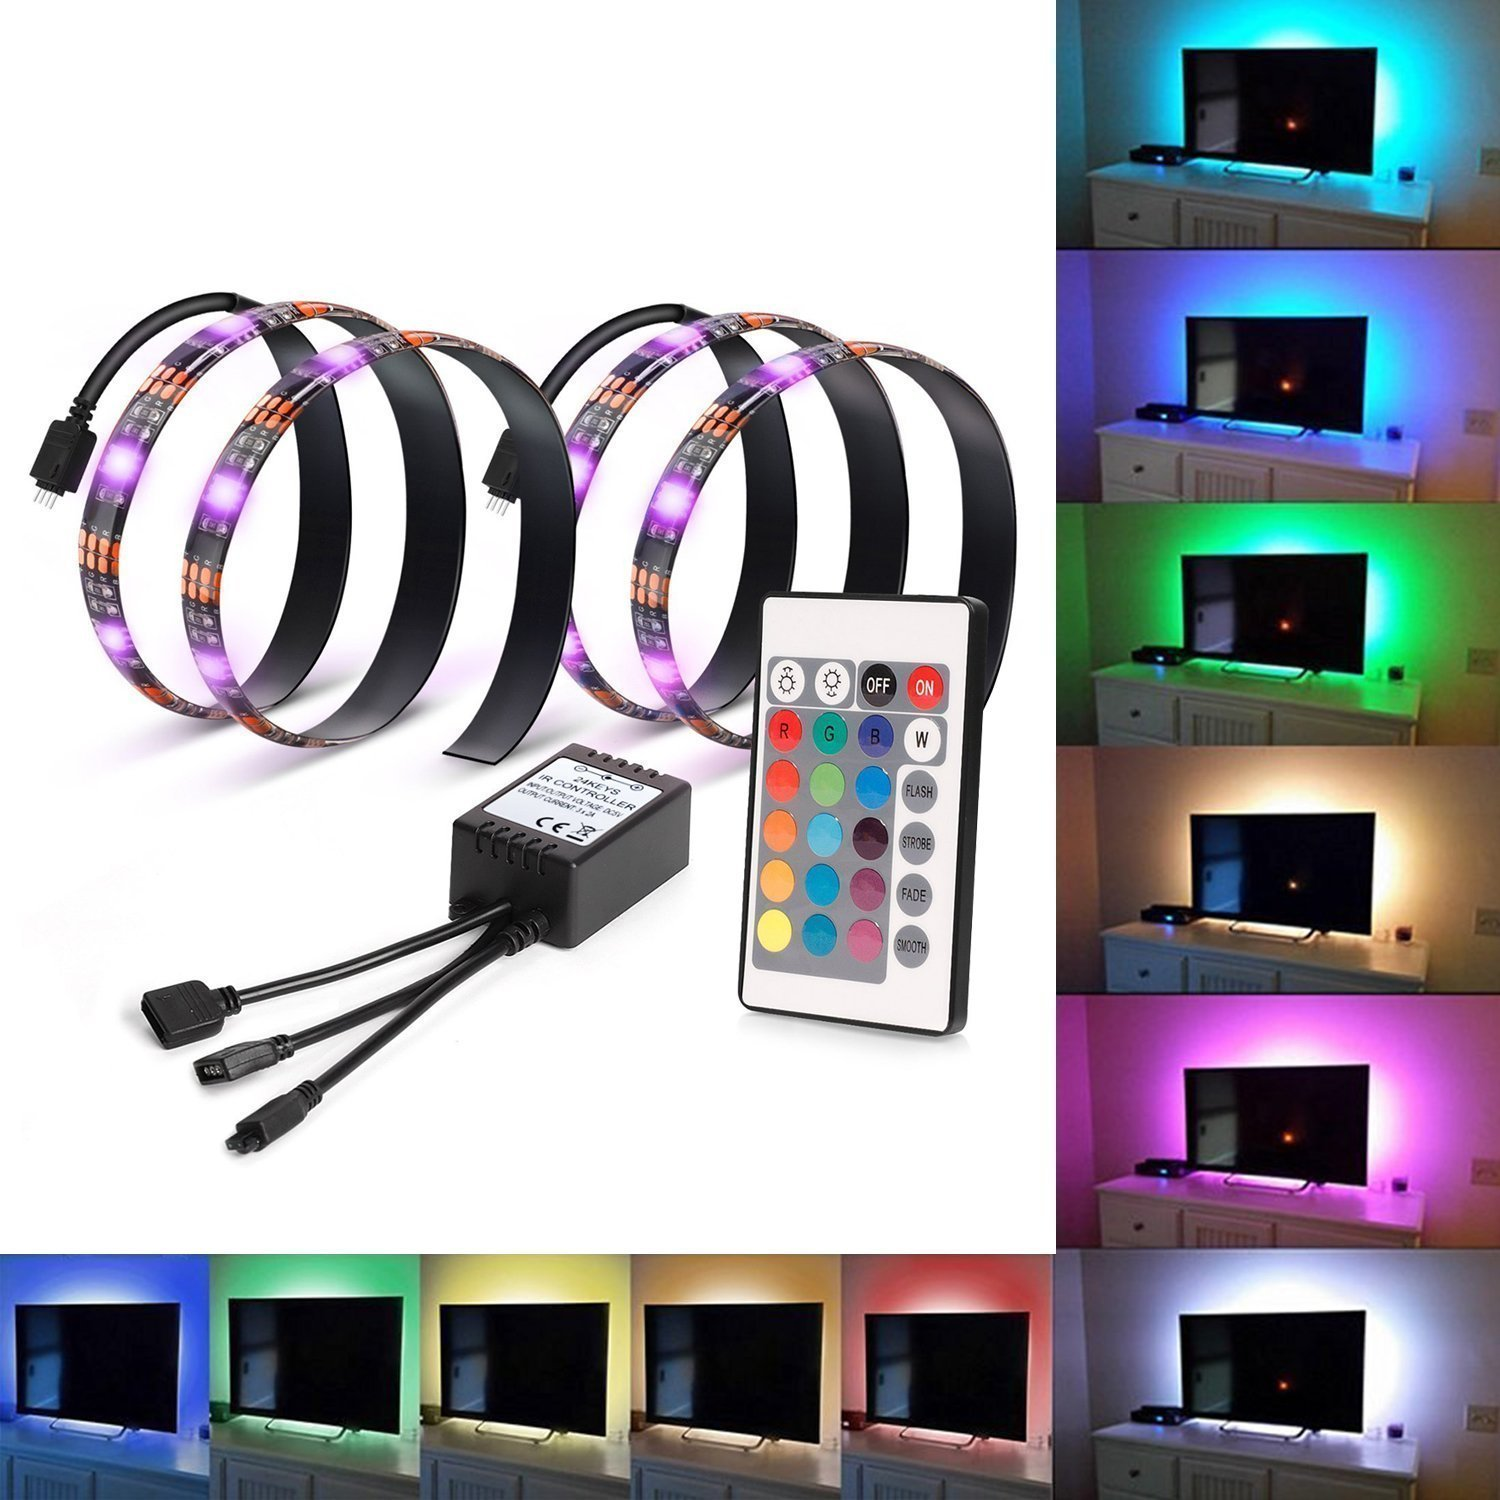 RGB TV Backlight Kit USB LED Strip Light Neon Accent Bias Lighting with 24keys Remote Controller for 24 to 65inch HDTV LCD Desktop PC Monitor (Set of 2) by YZLED (Image #1)